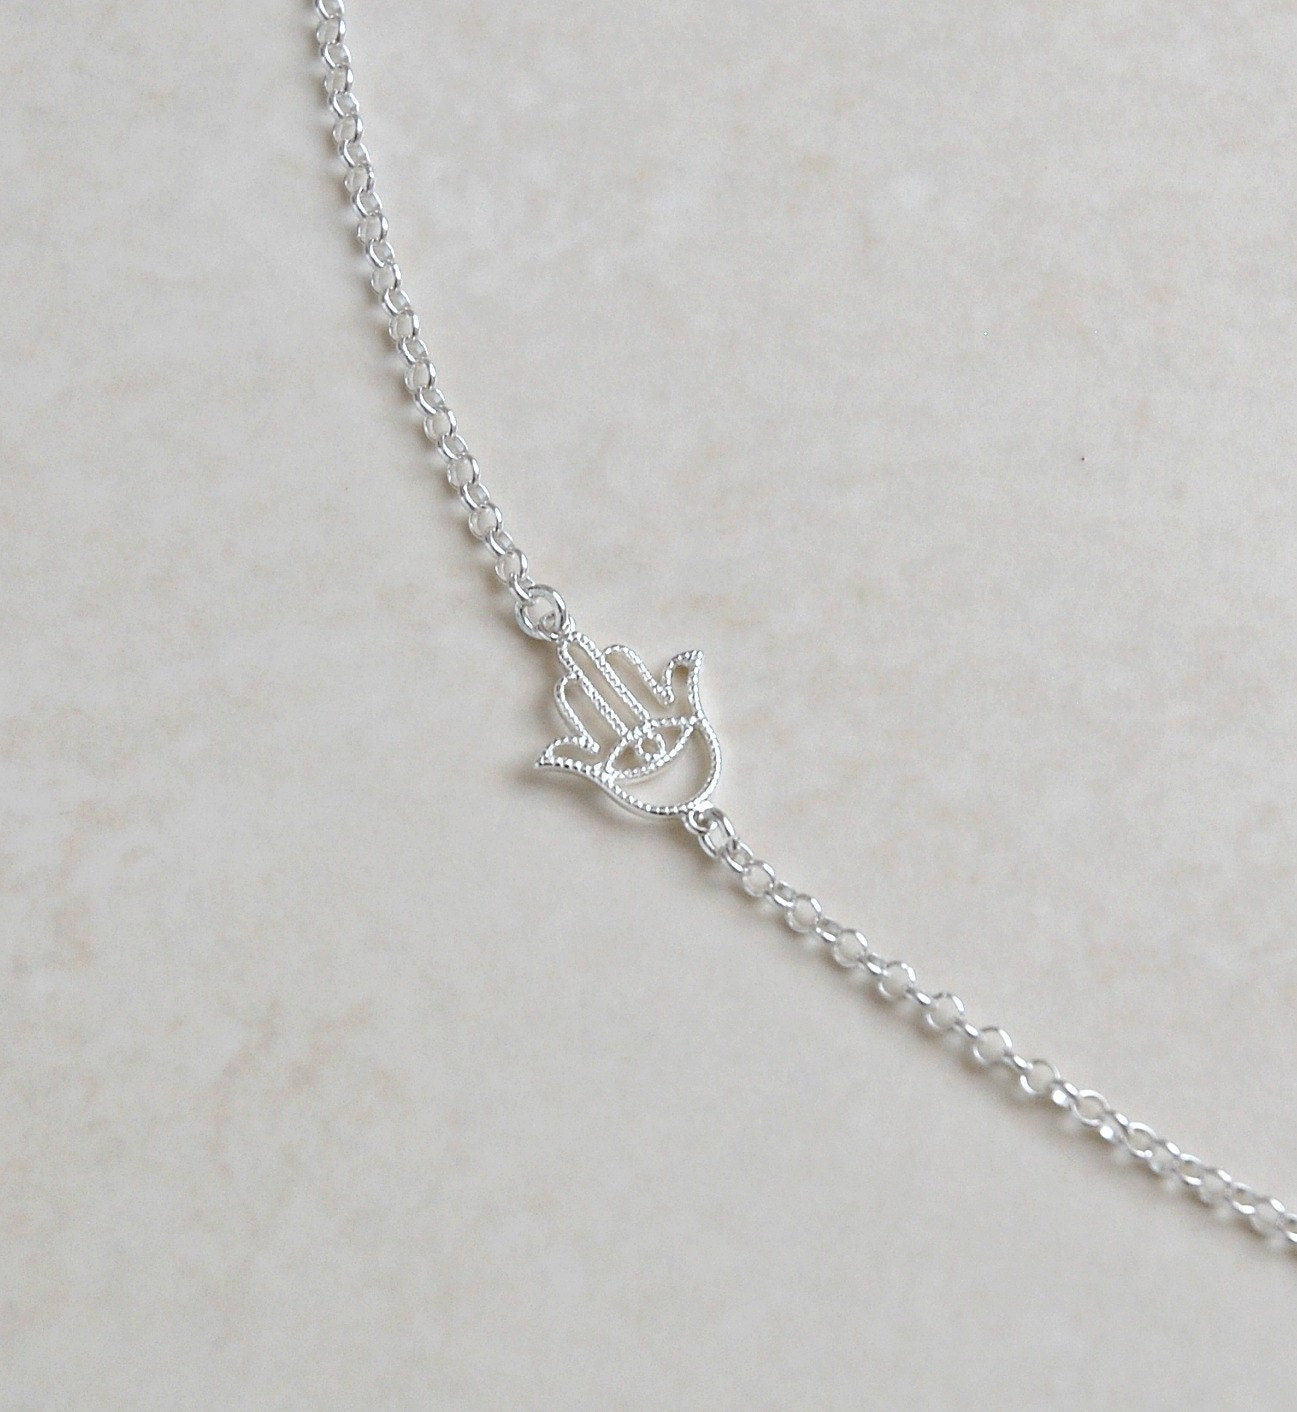 Silver hamsa necklace - sterling silver hamsa hand connector - hamsa charm - hand of fatima - mini hamsa - trendy protection jewelry - Asima - littleglamour